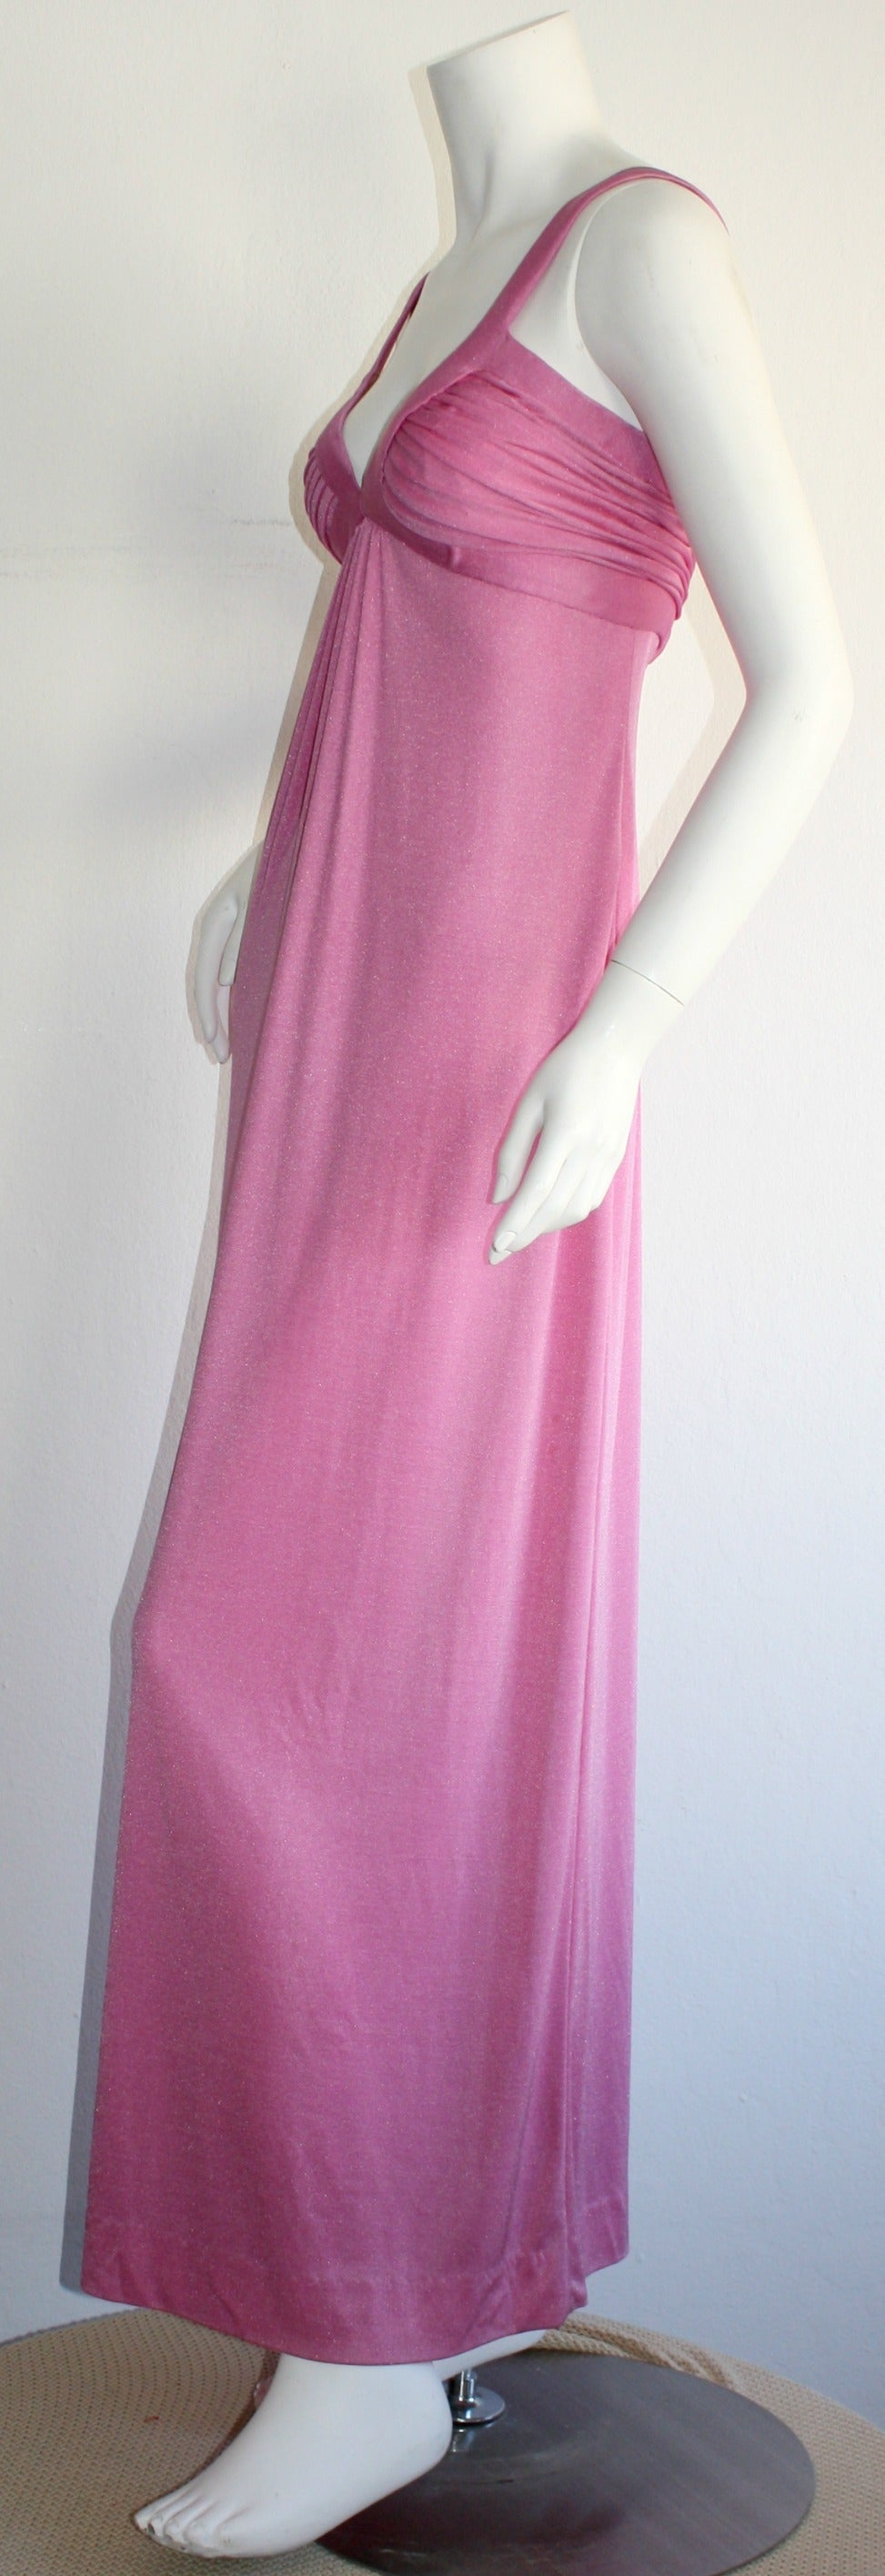 Women's Loris Azzaro 1970s Silk Jersey Vintage Pink Empire Dress Gown For Sale